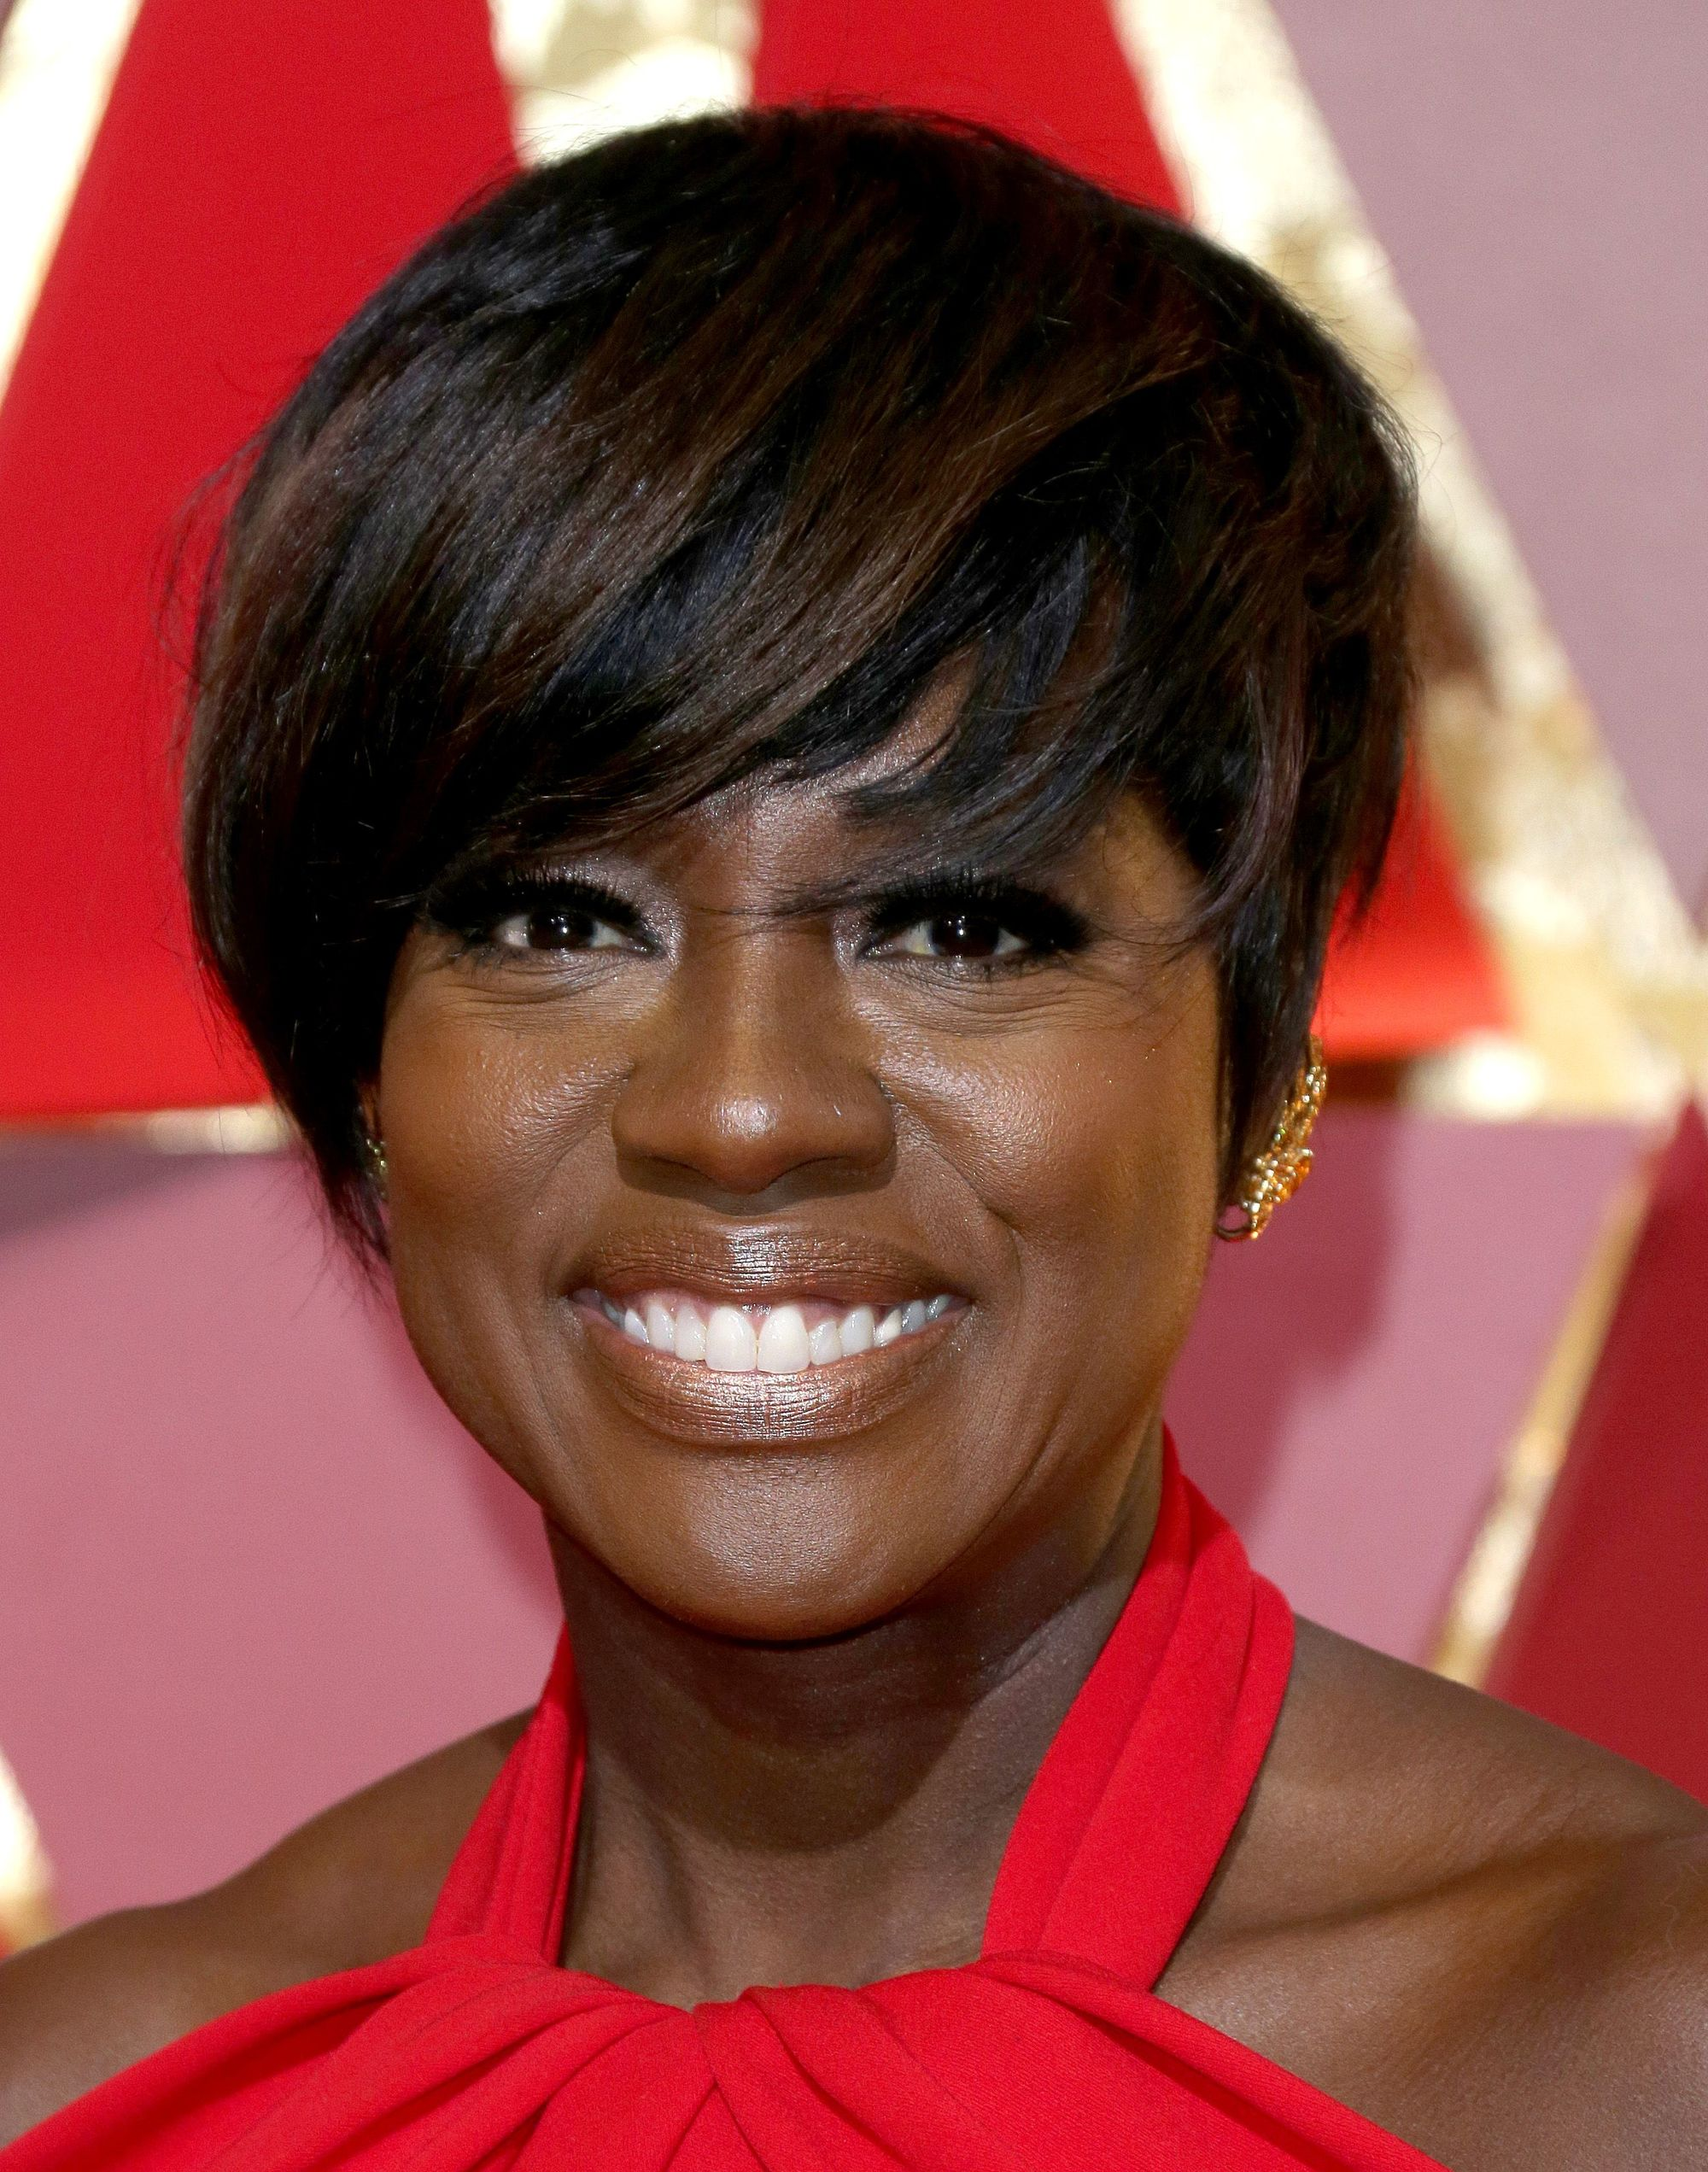 viola davis at the oscars 2017 wearing a red halterneck dress with a pixie crop haircut